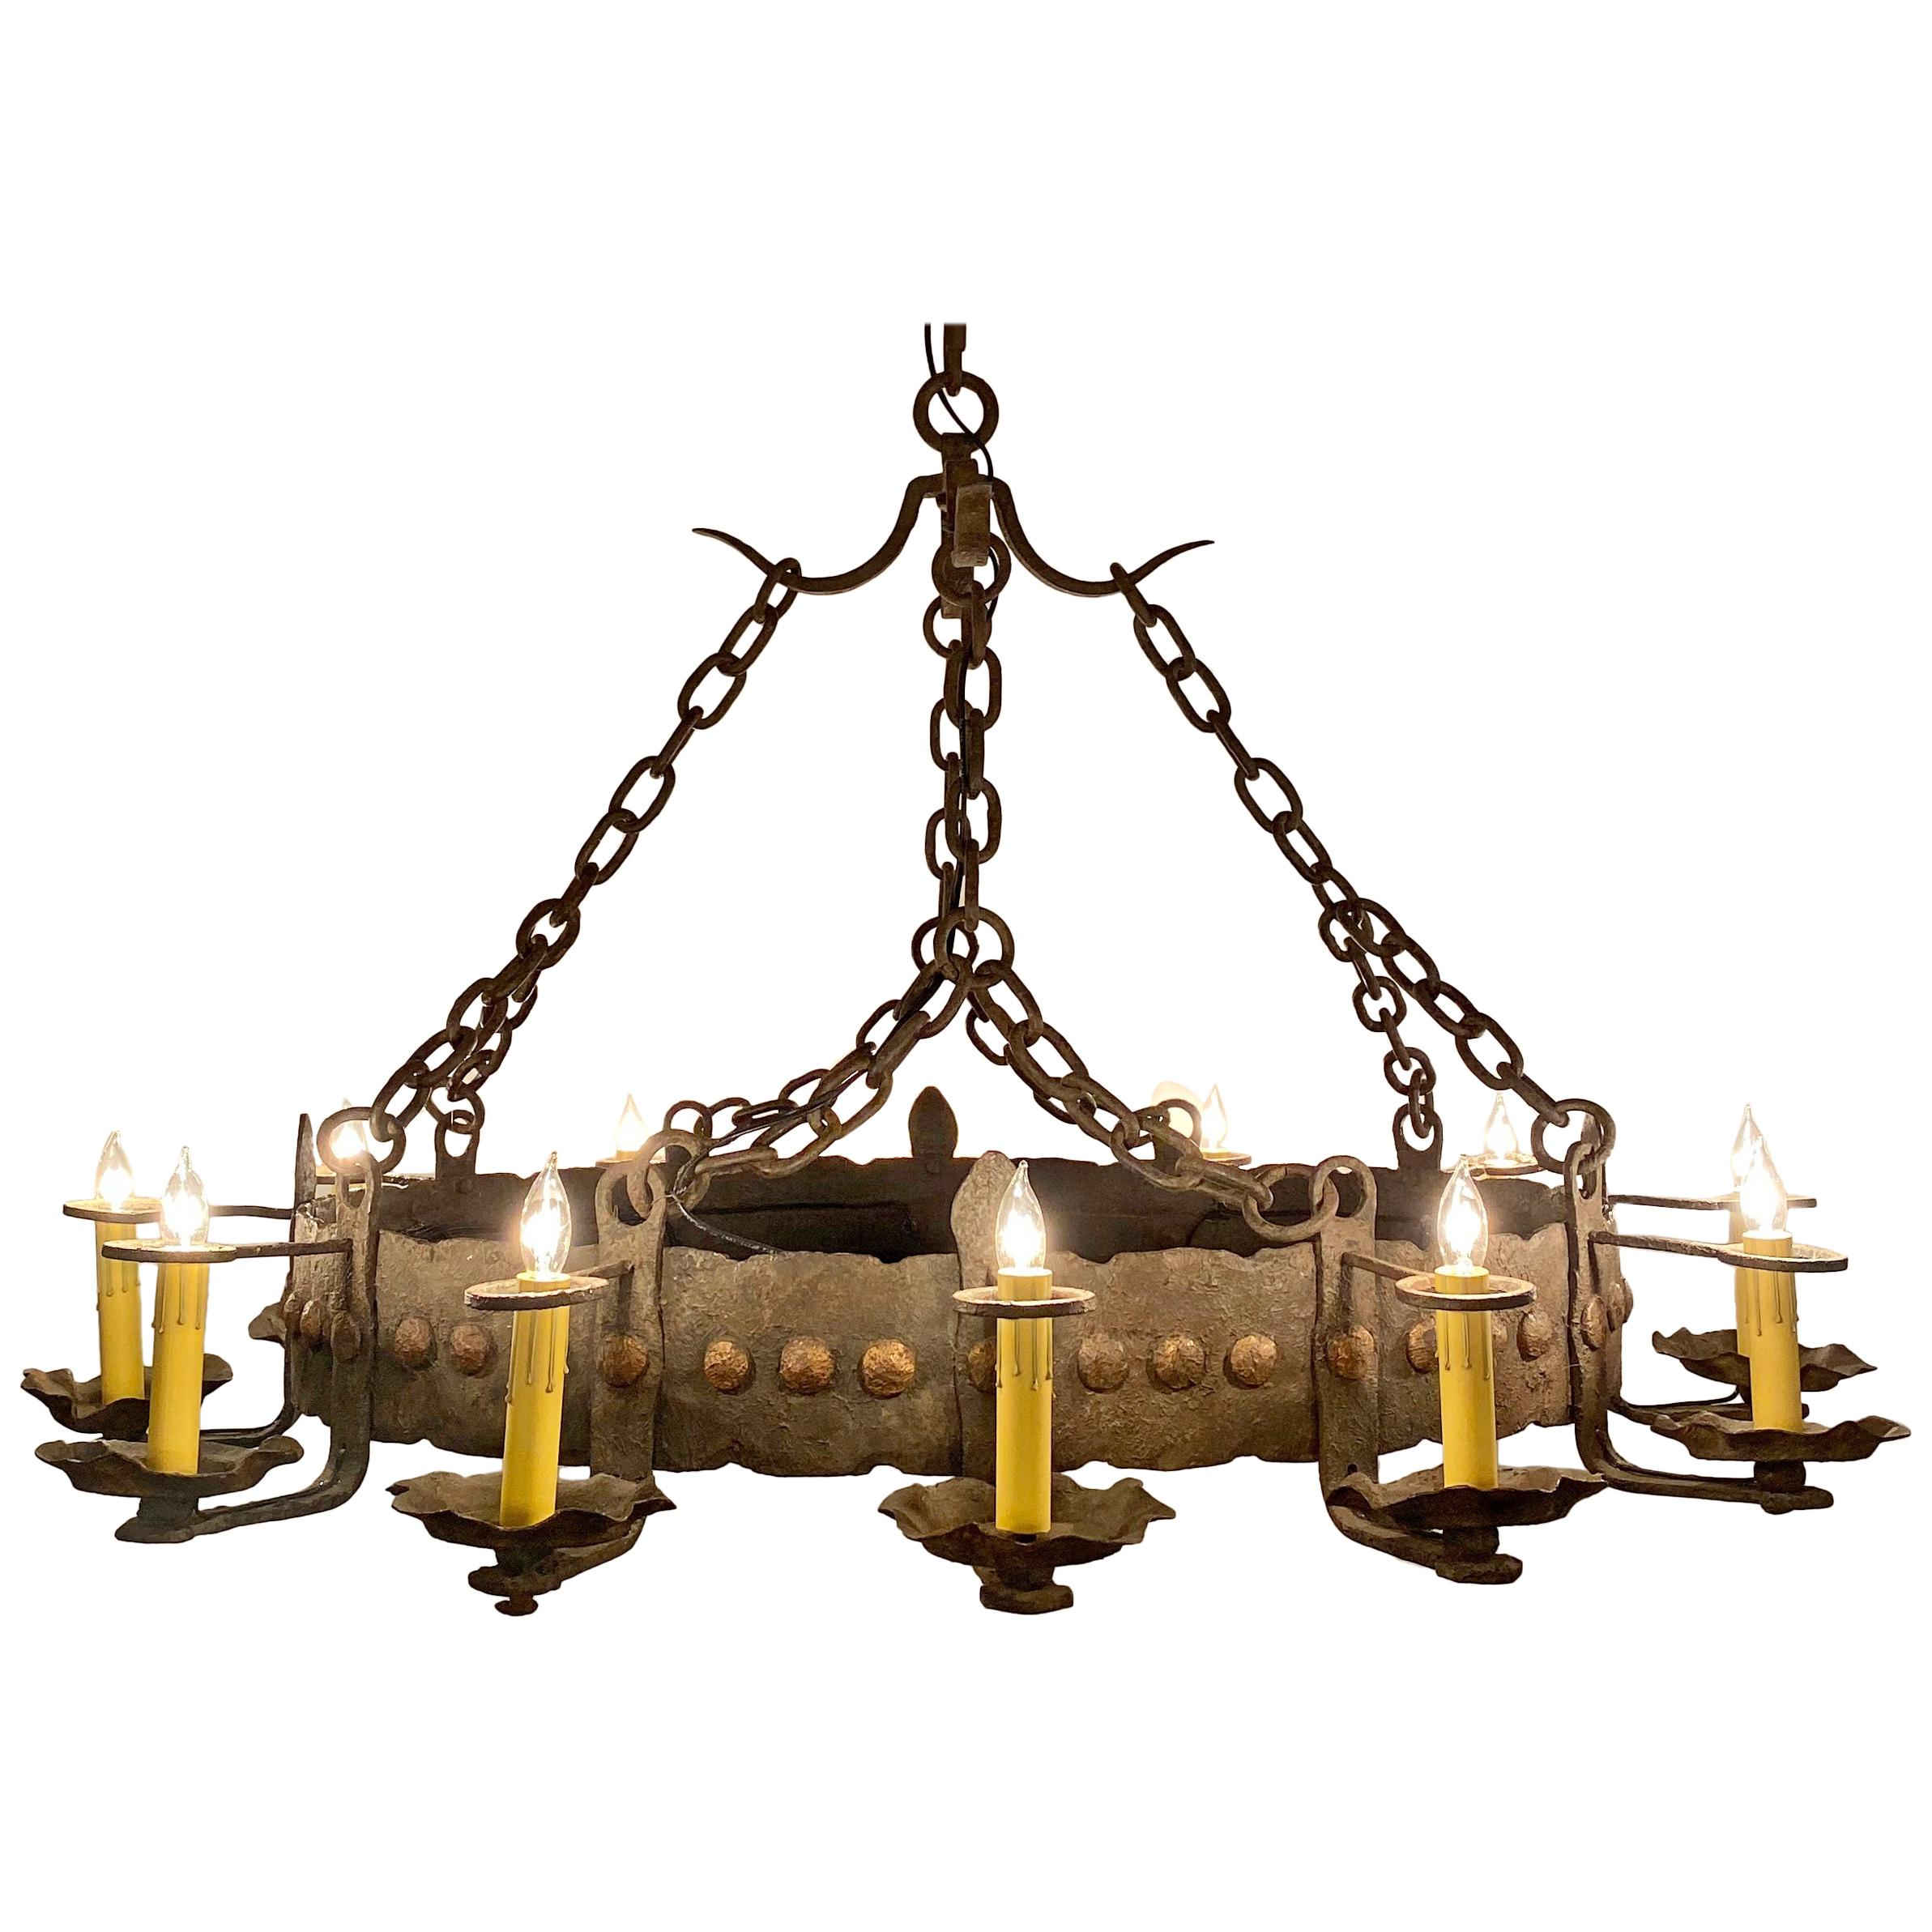 Antique French Wrought Iron 12-Light Chandelier, circa 1910